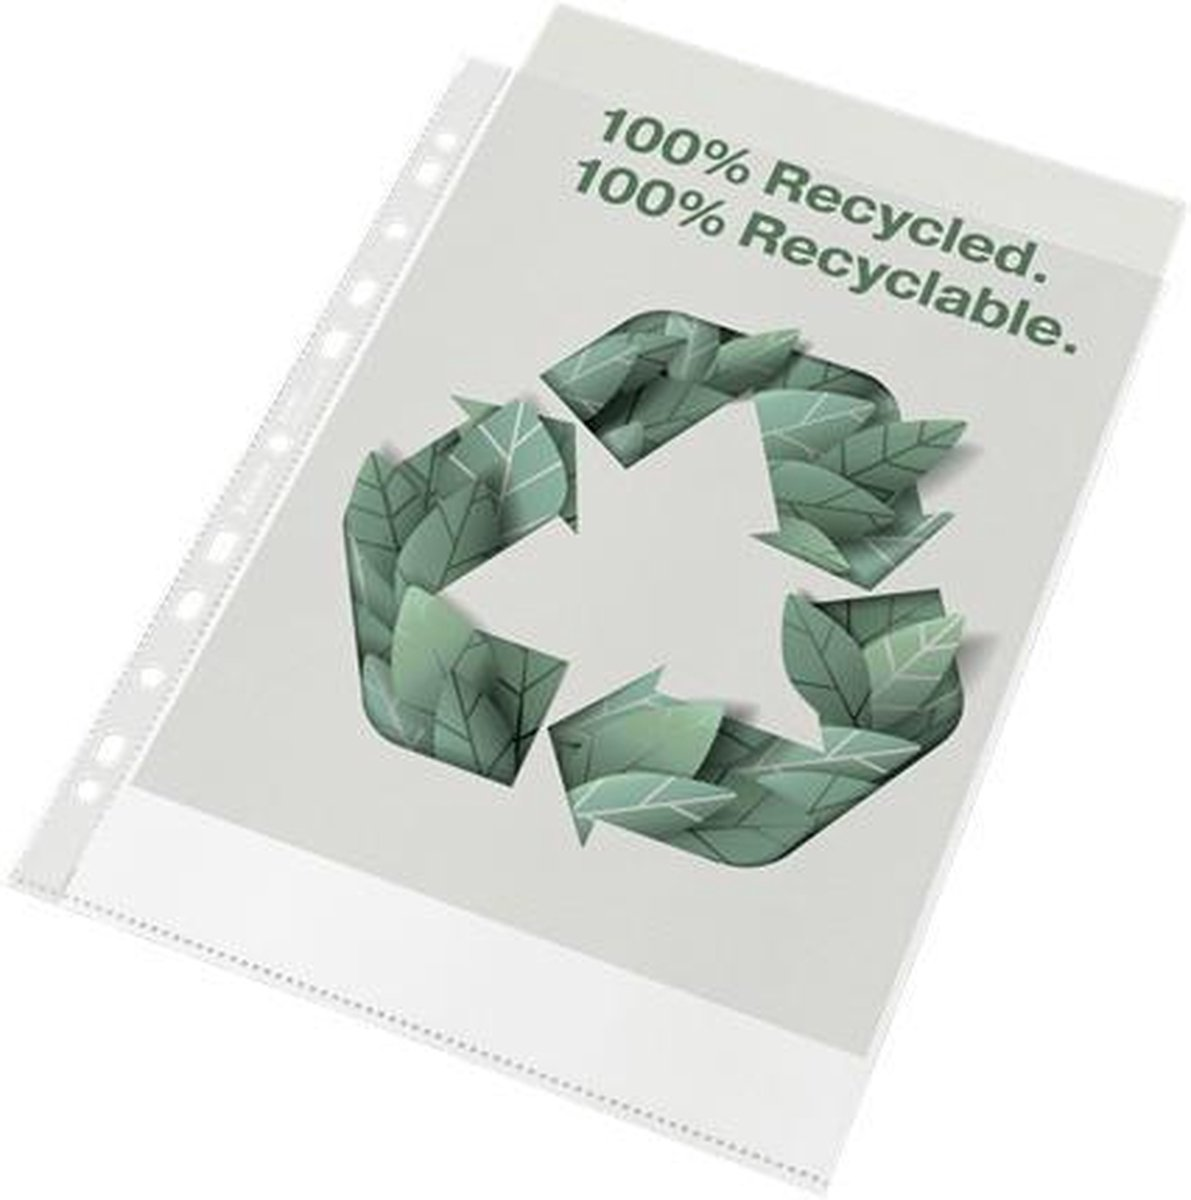 Esselte Showtas Recycled A4 PP OP100μ 50pcs cl